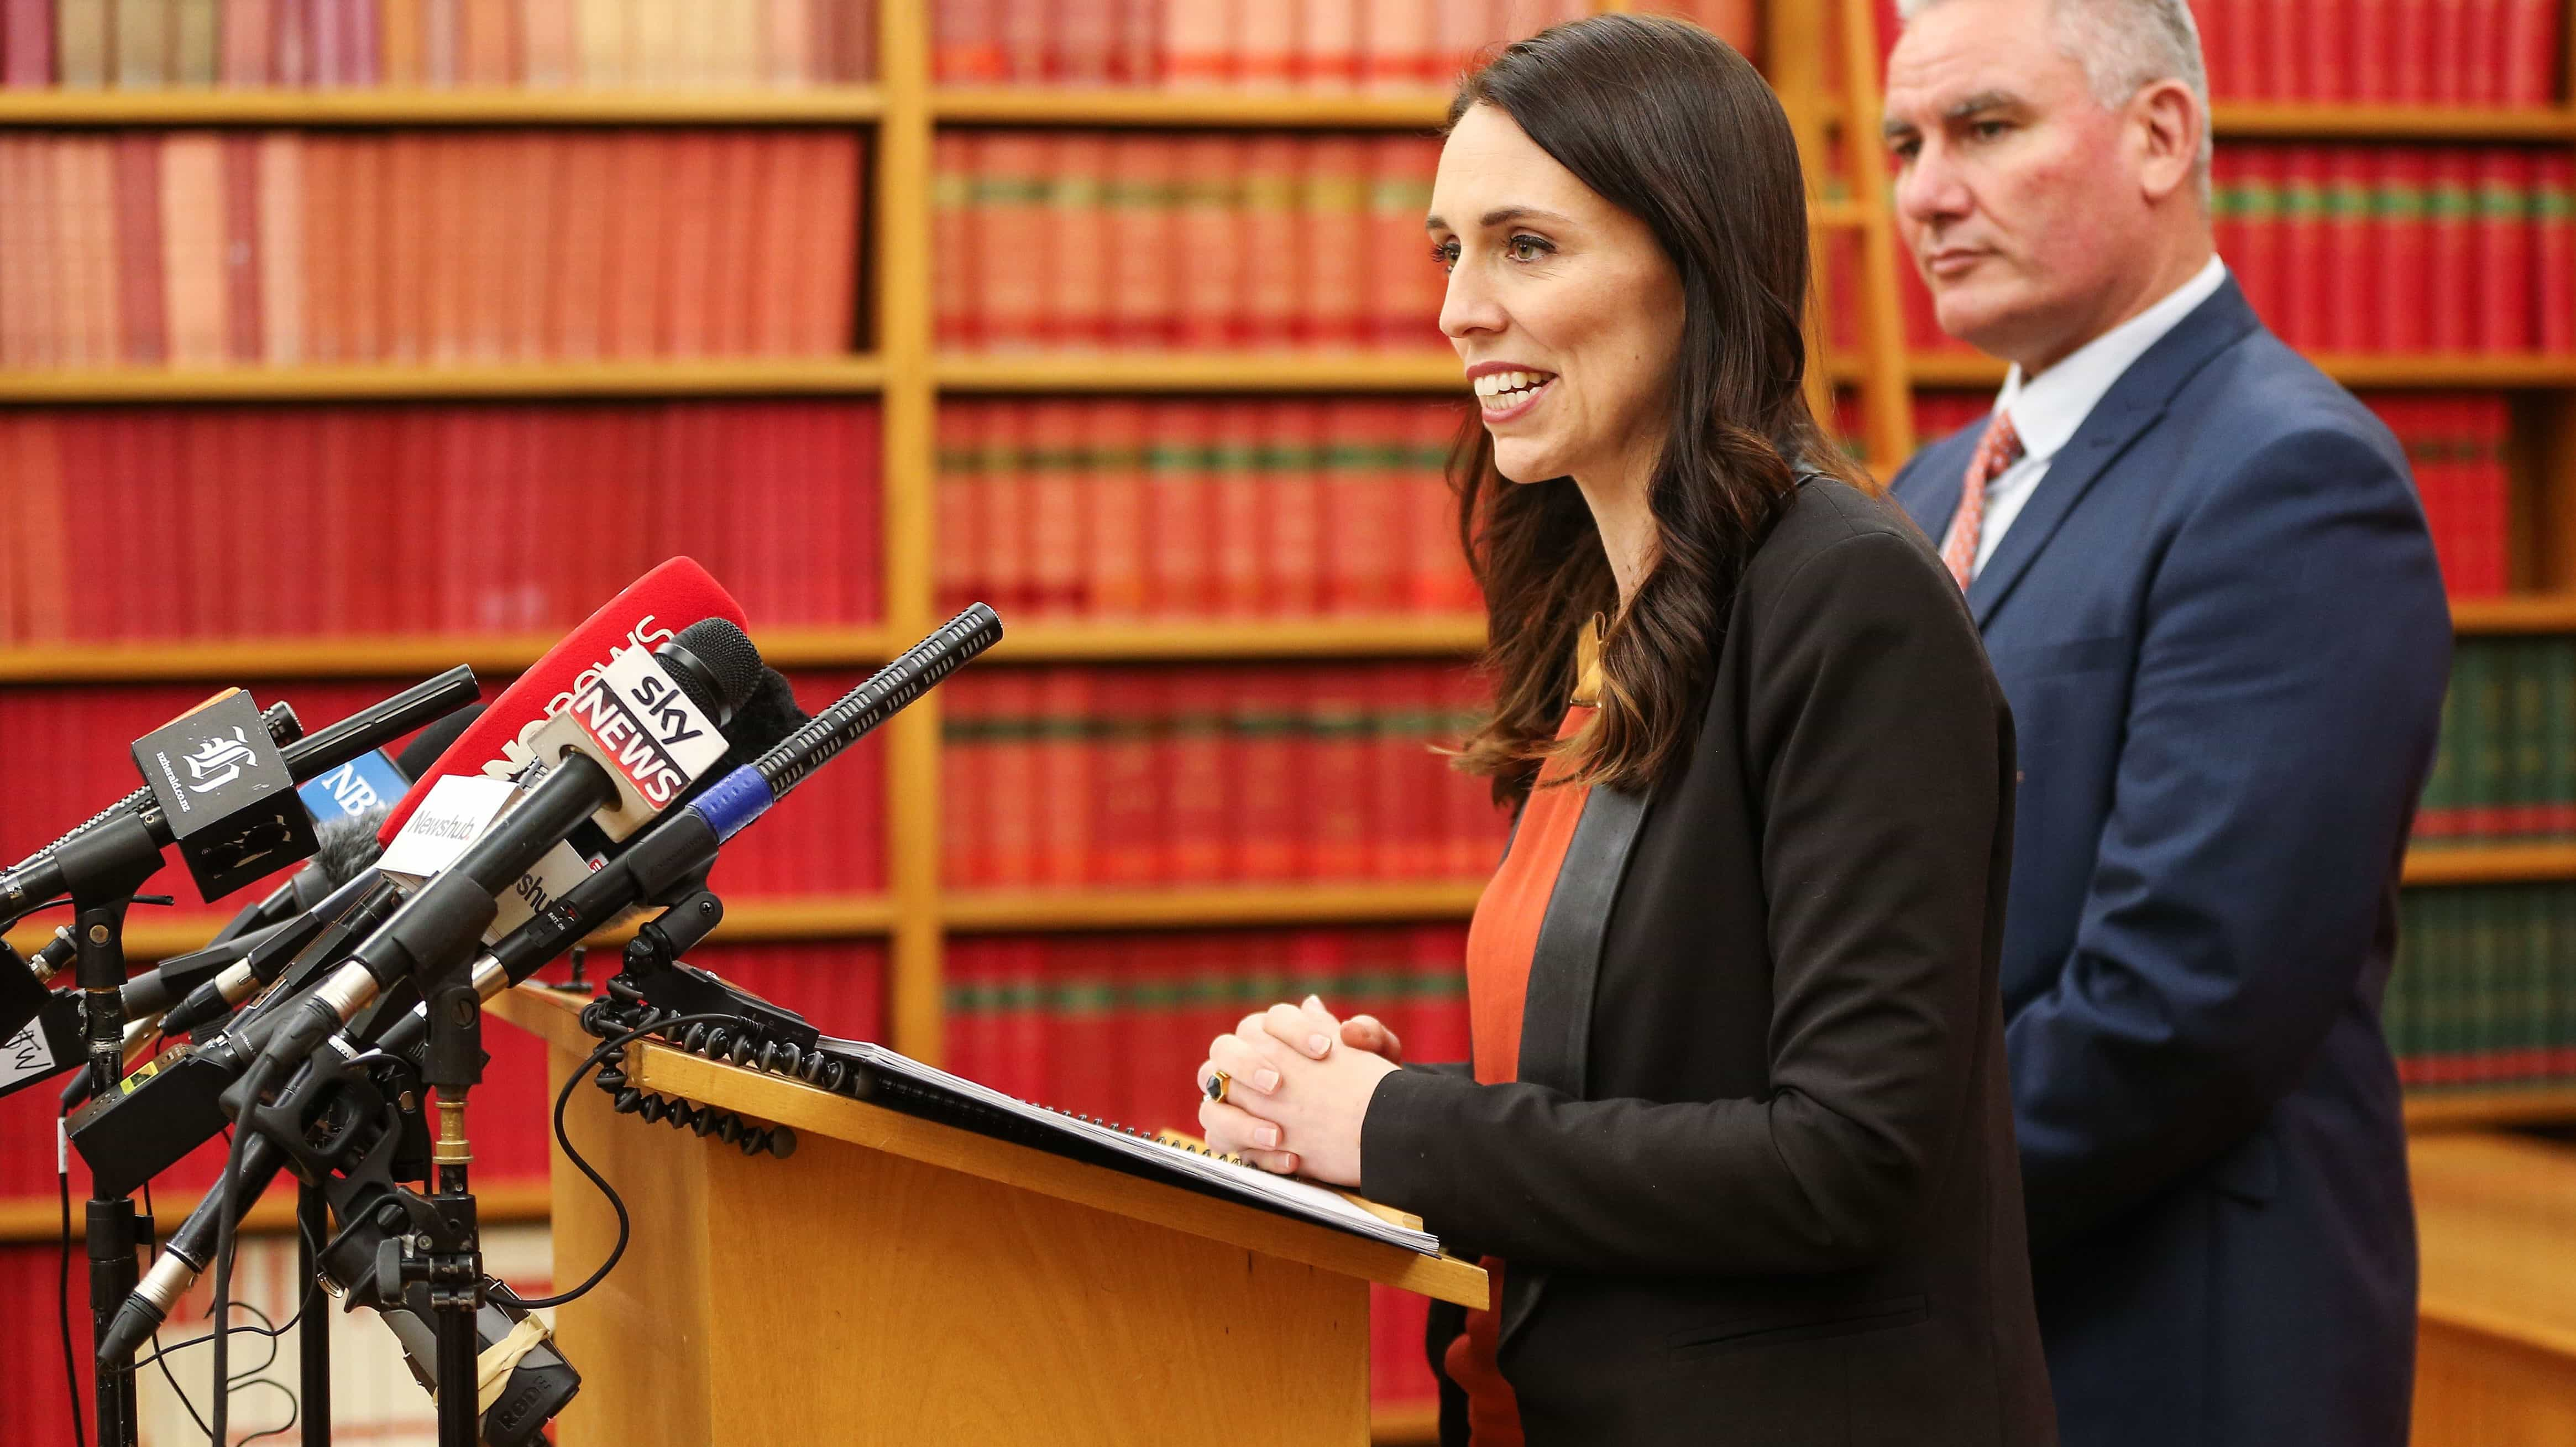 Labour leader and Prime Minister-elect Jacinda Ardern, October 2017 (Photo: Hagen Hopkins/Getty Images)